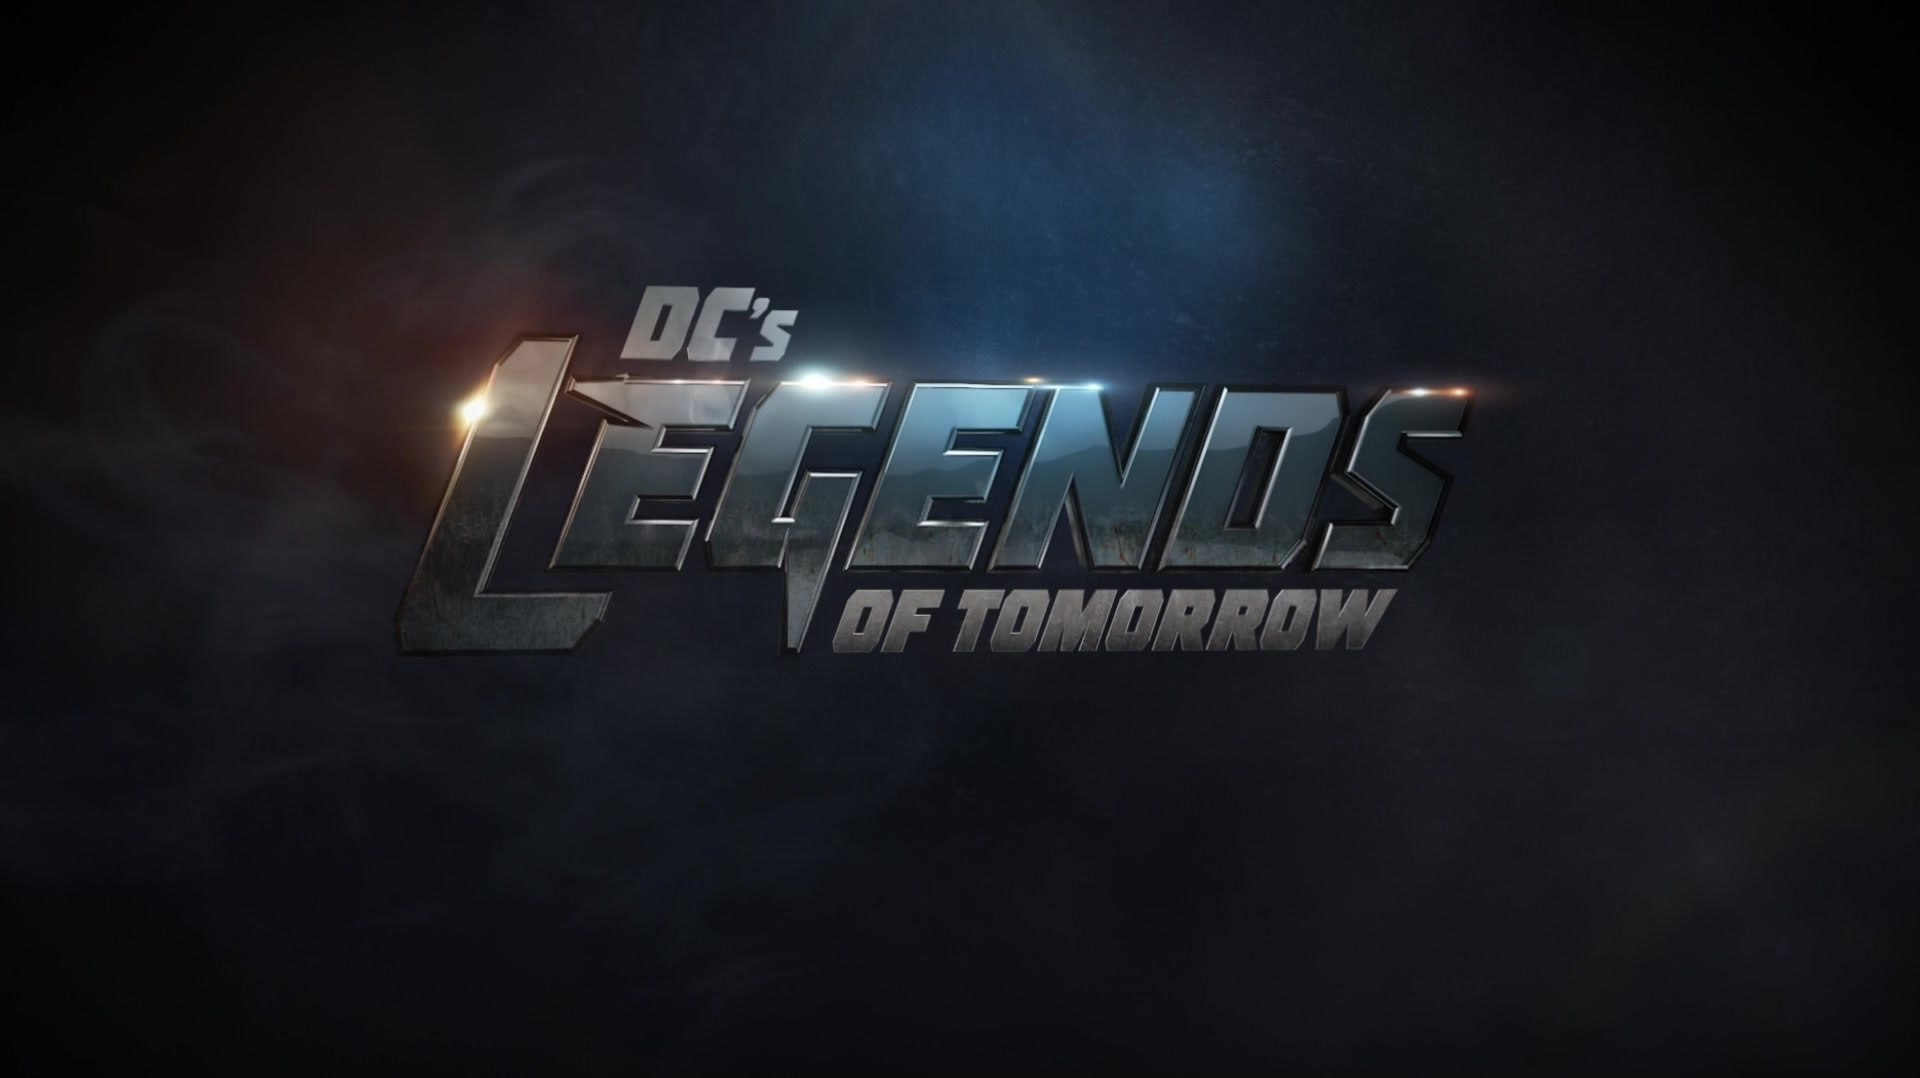 DC's Legends of Tomorrow (TV Series) Episode: Aruba